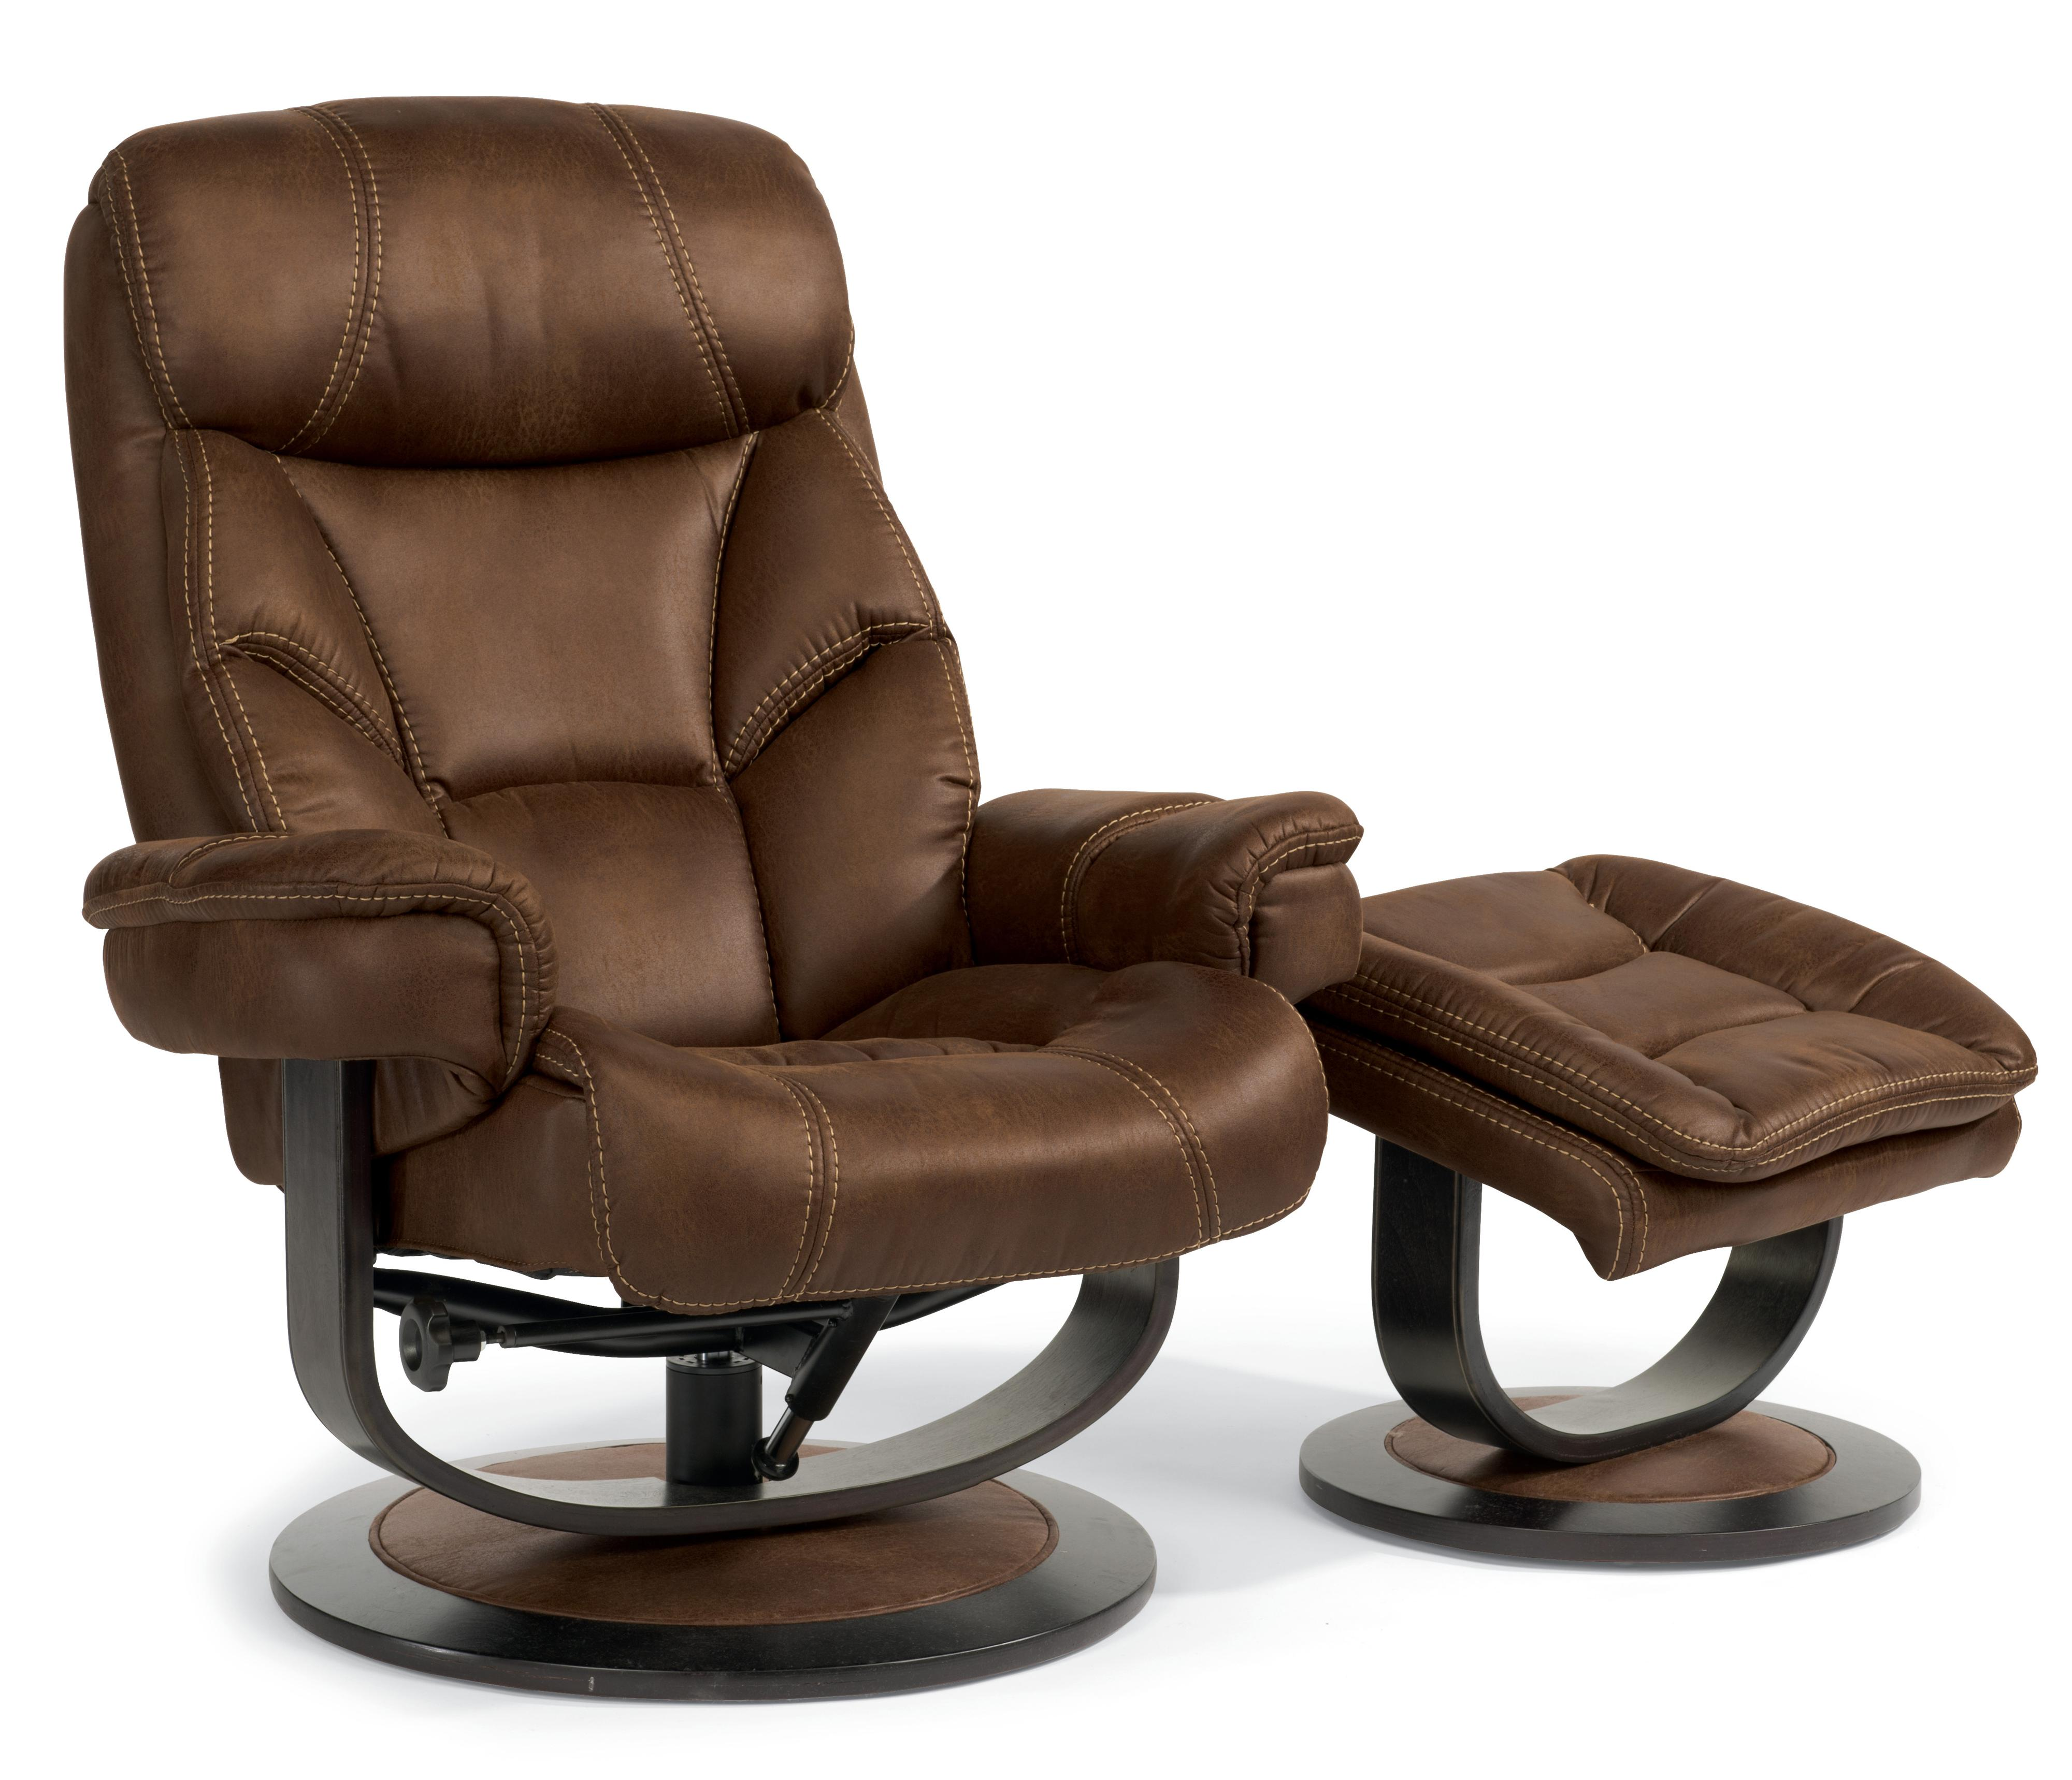 Modern Recliner Chair Latitudes West Modern Zero Gravity Reclining Chair And Ottoman Set By Flexsteel At Fashion Furniture